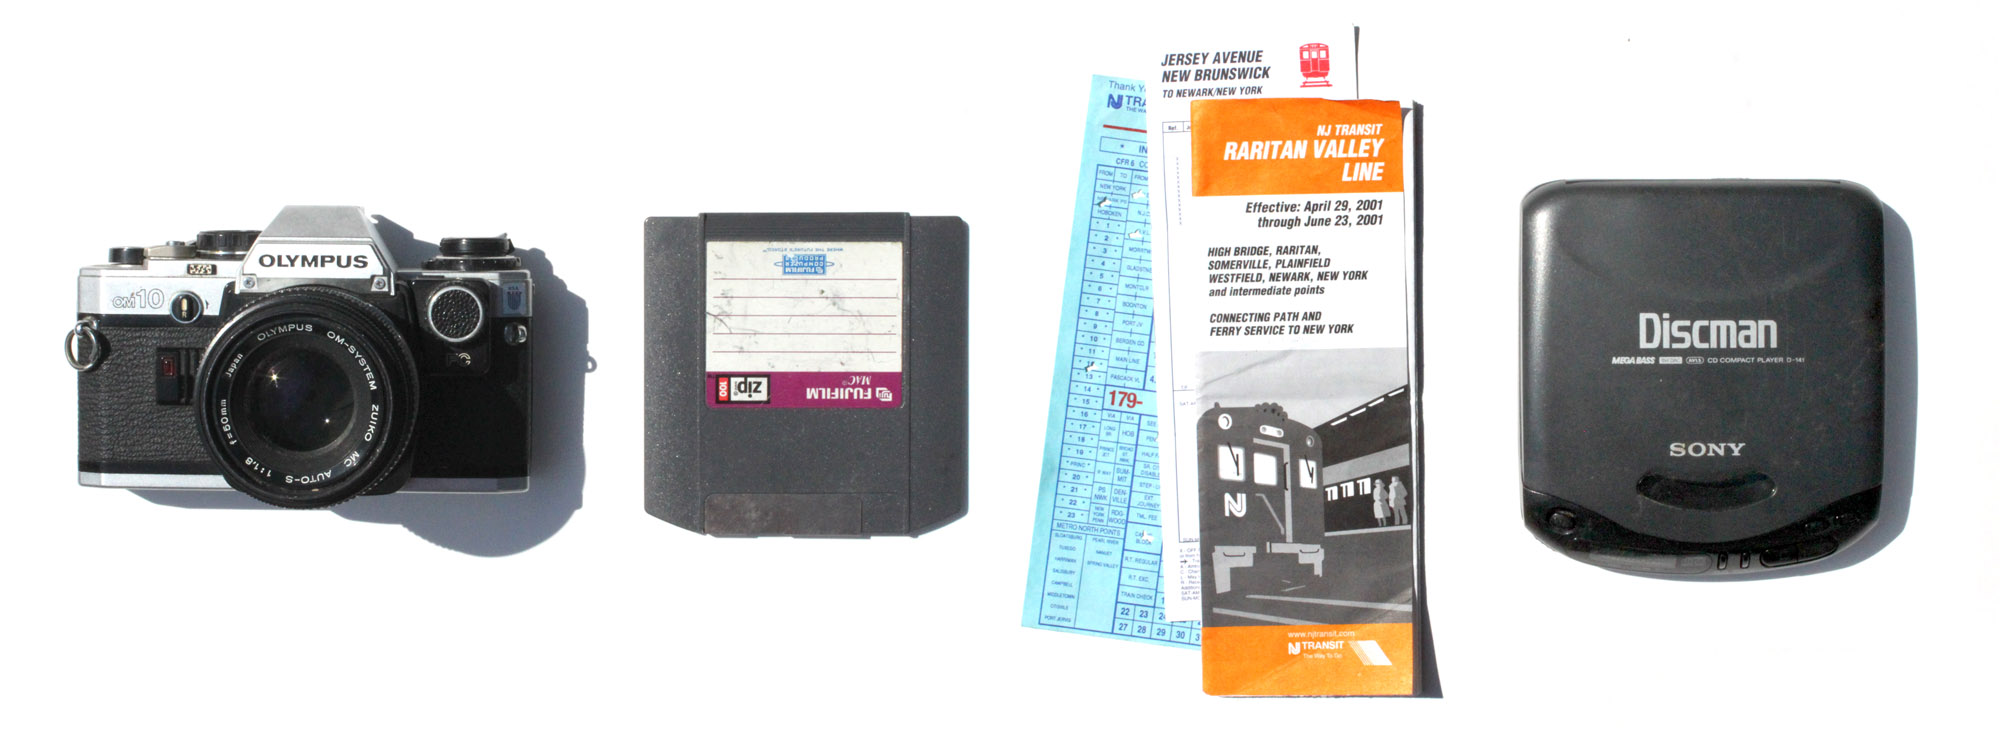 Mid 1970's Olympus SLR, Film Camera - 2001 ZIP Disk, Printed Train Schedule and a '90's era Discman.